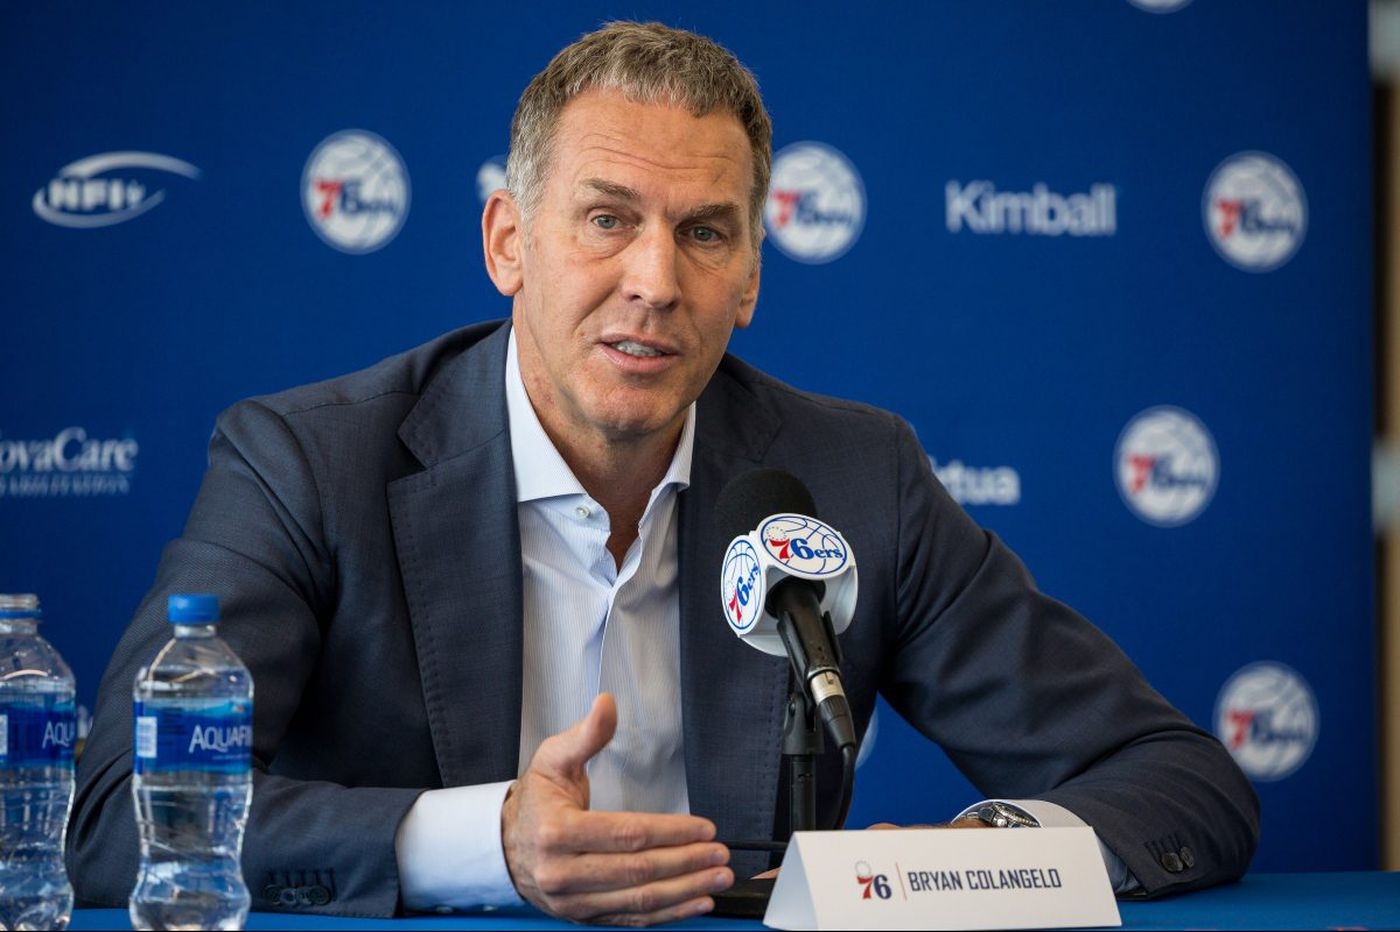 Sixers start independent investigation into Bryan Colangelo allegations